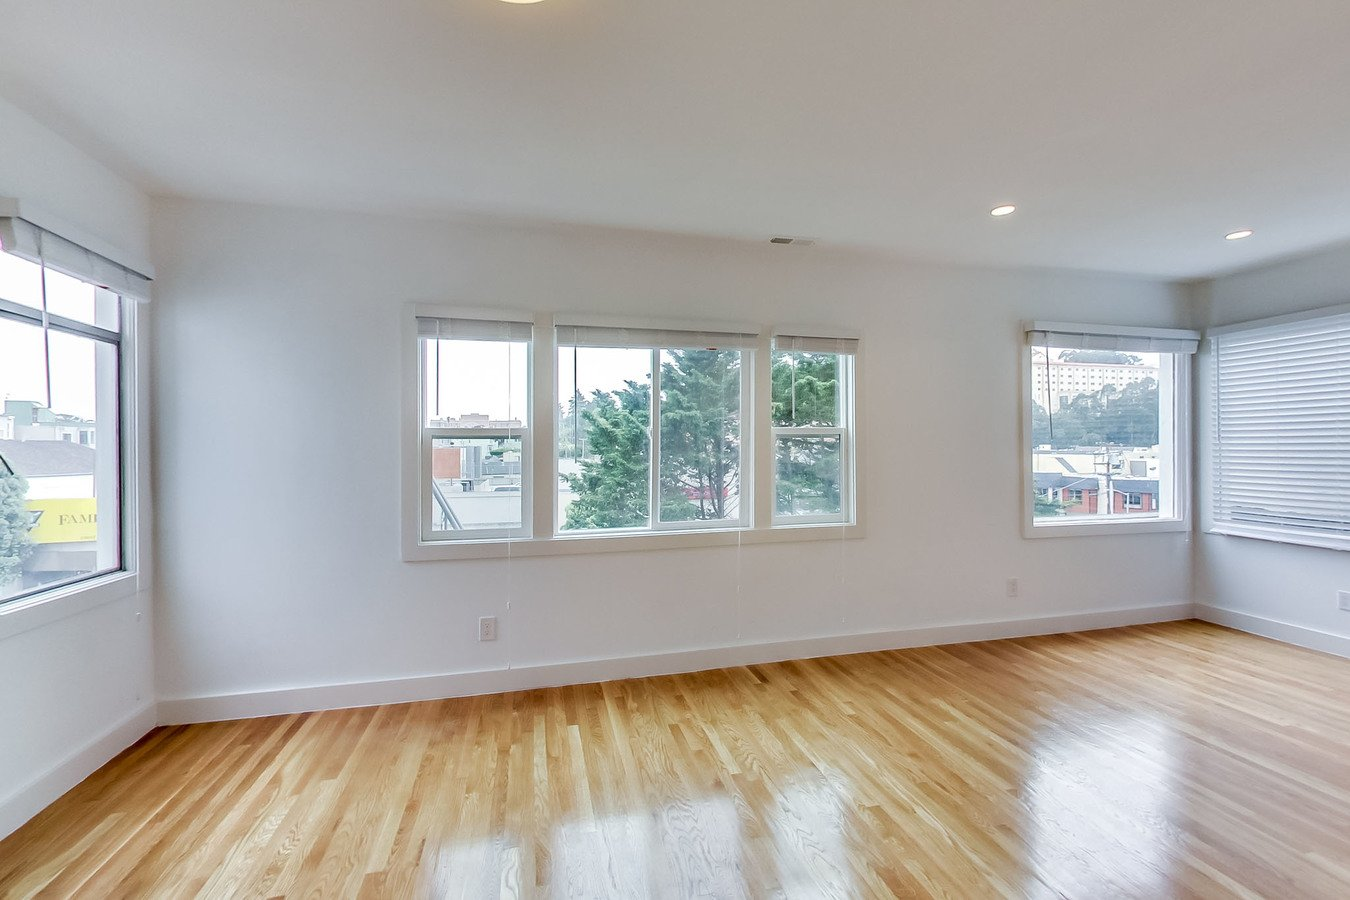 1 Bedroom 1 Bathroom Apartment for rent at 2828 Geary Apartments in San Francisco, CA